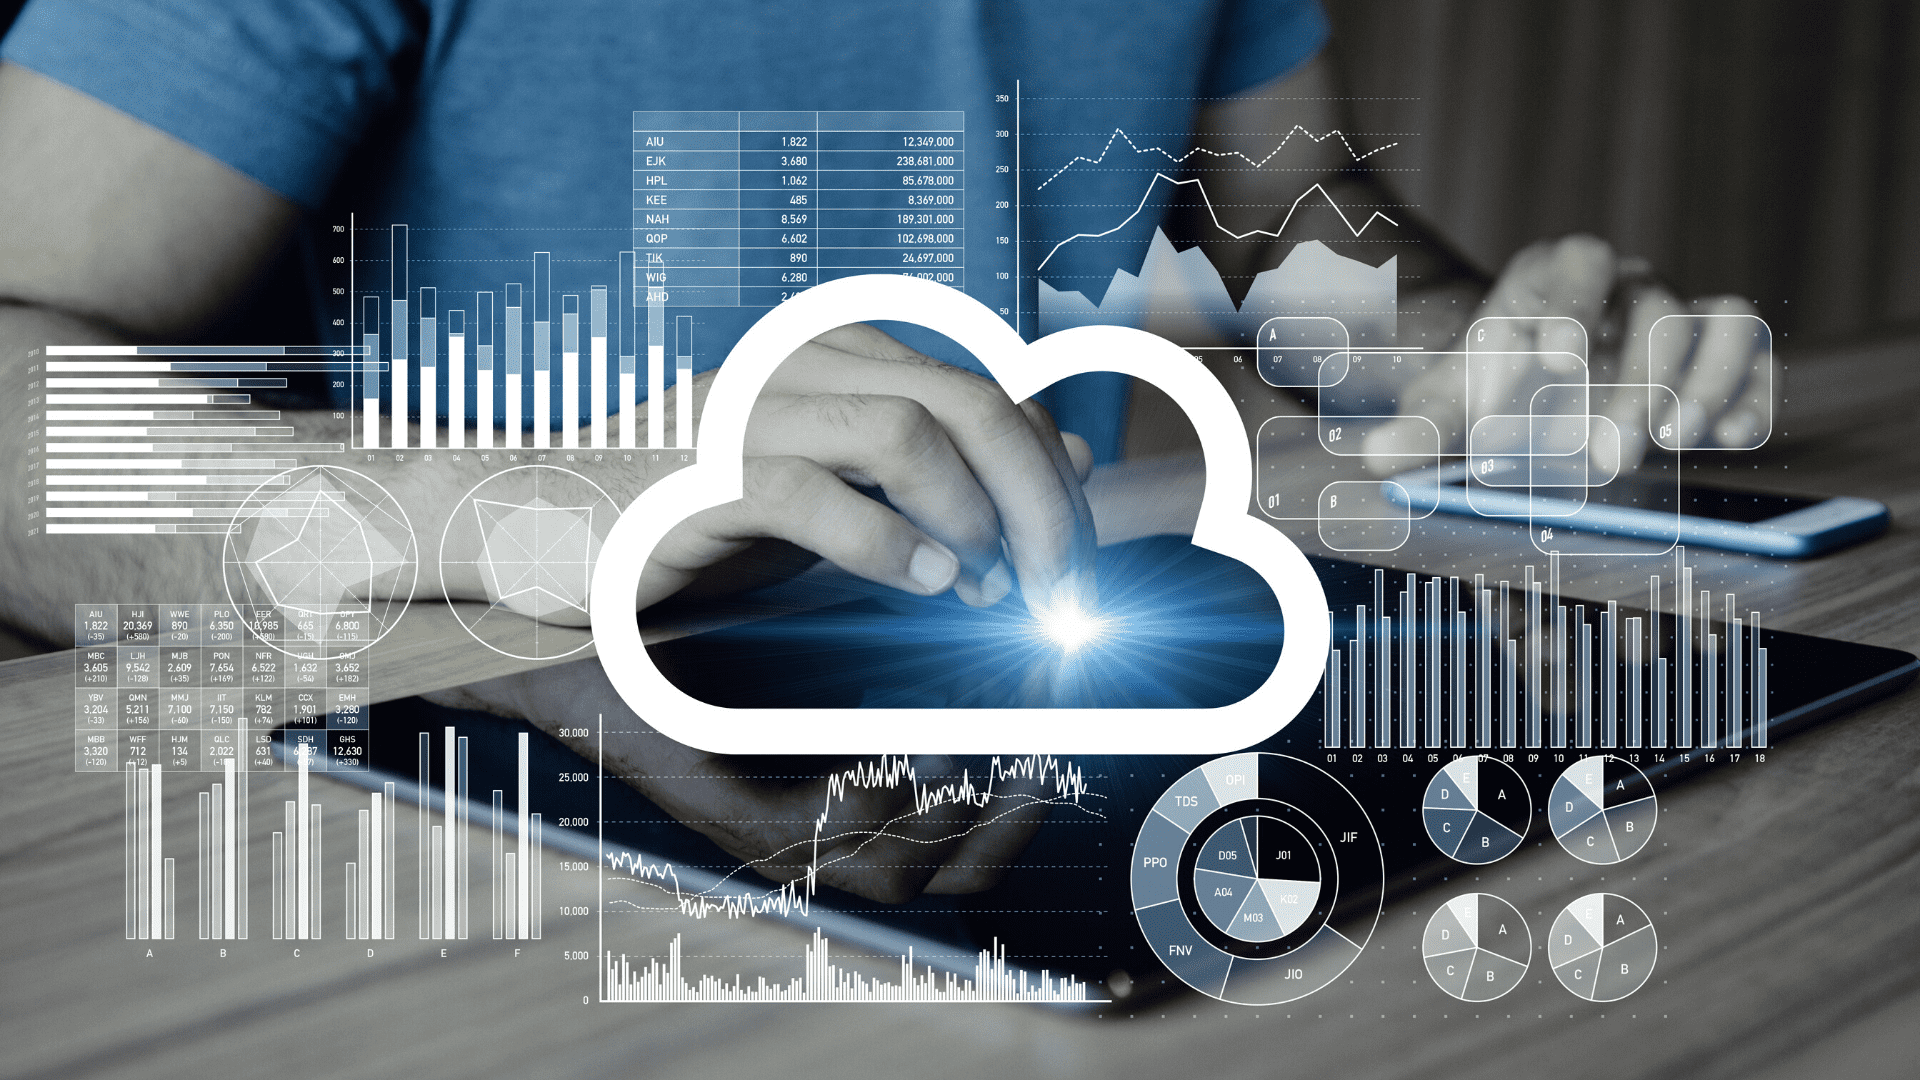 10 Benefits of Cloud Computing for Business